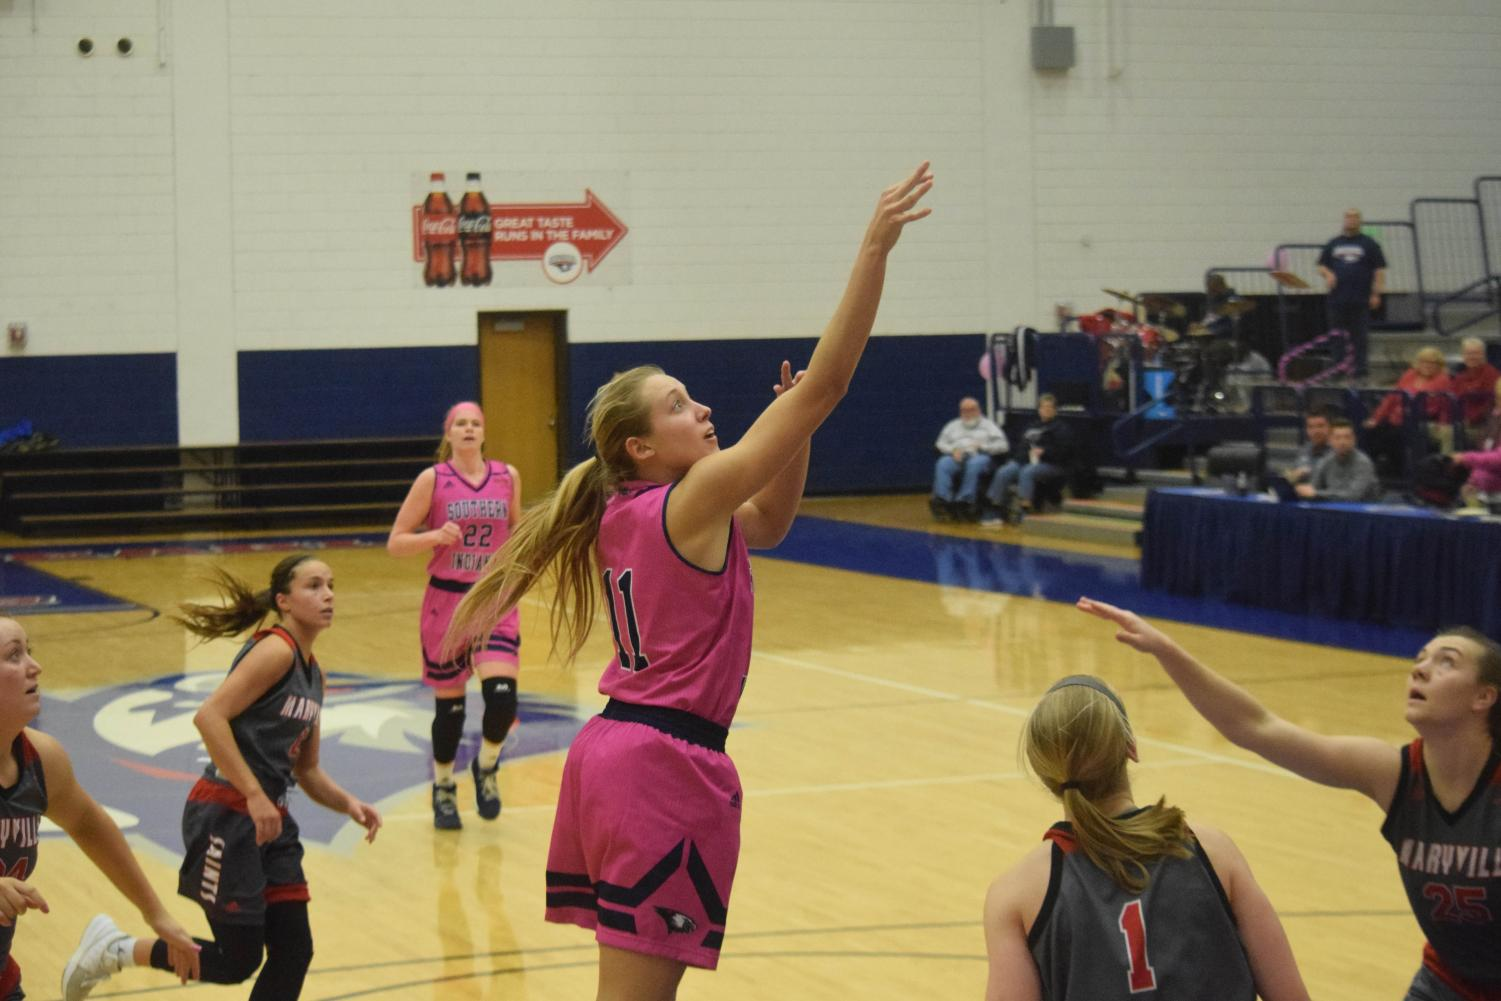 Morgan+Sherwood%2C+sophomore+guard%2C+goes+up+for+a+shot+Thursday+night.